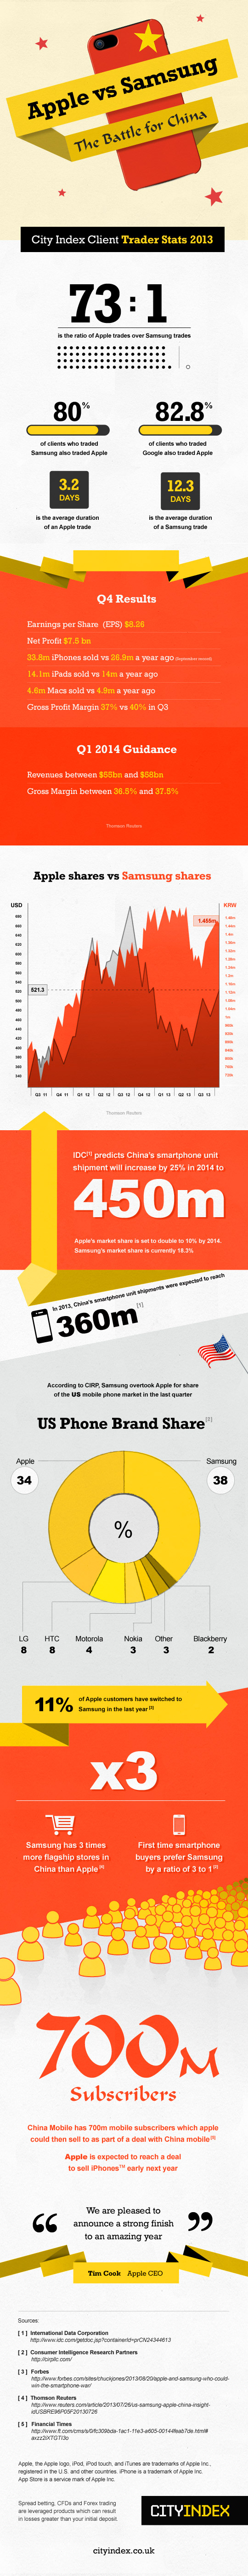 Infographic-Apple-vs-Samsung-UK_28102013